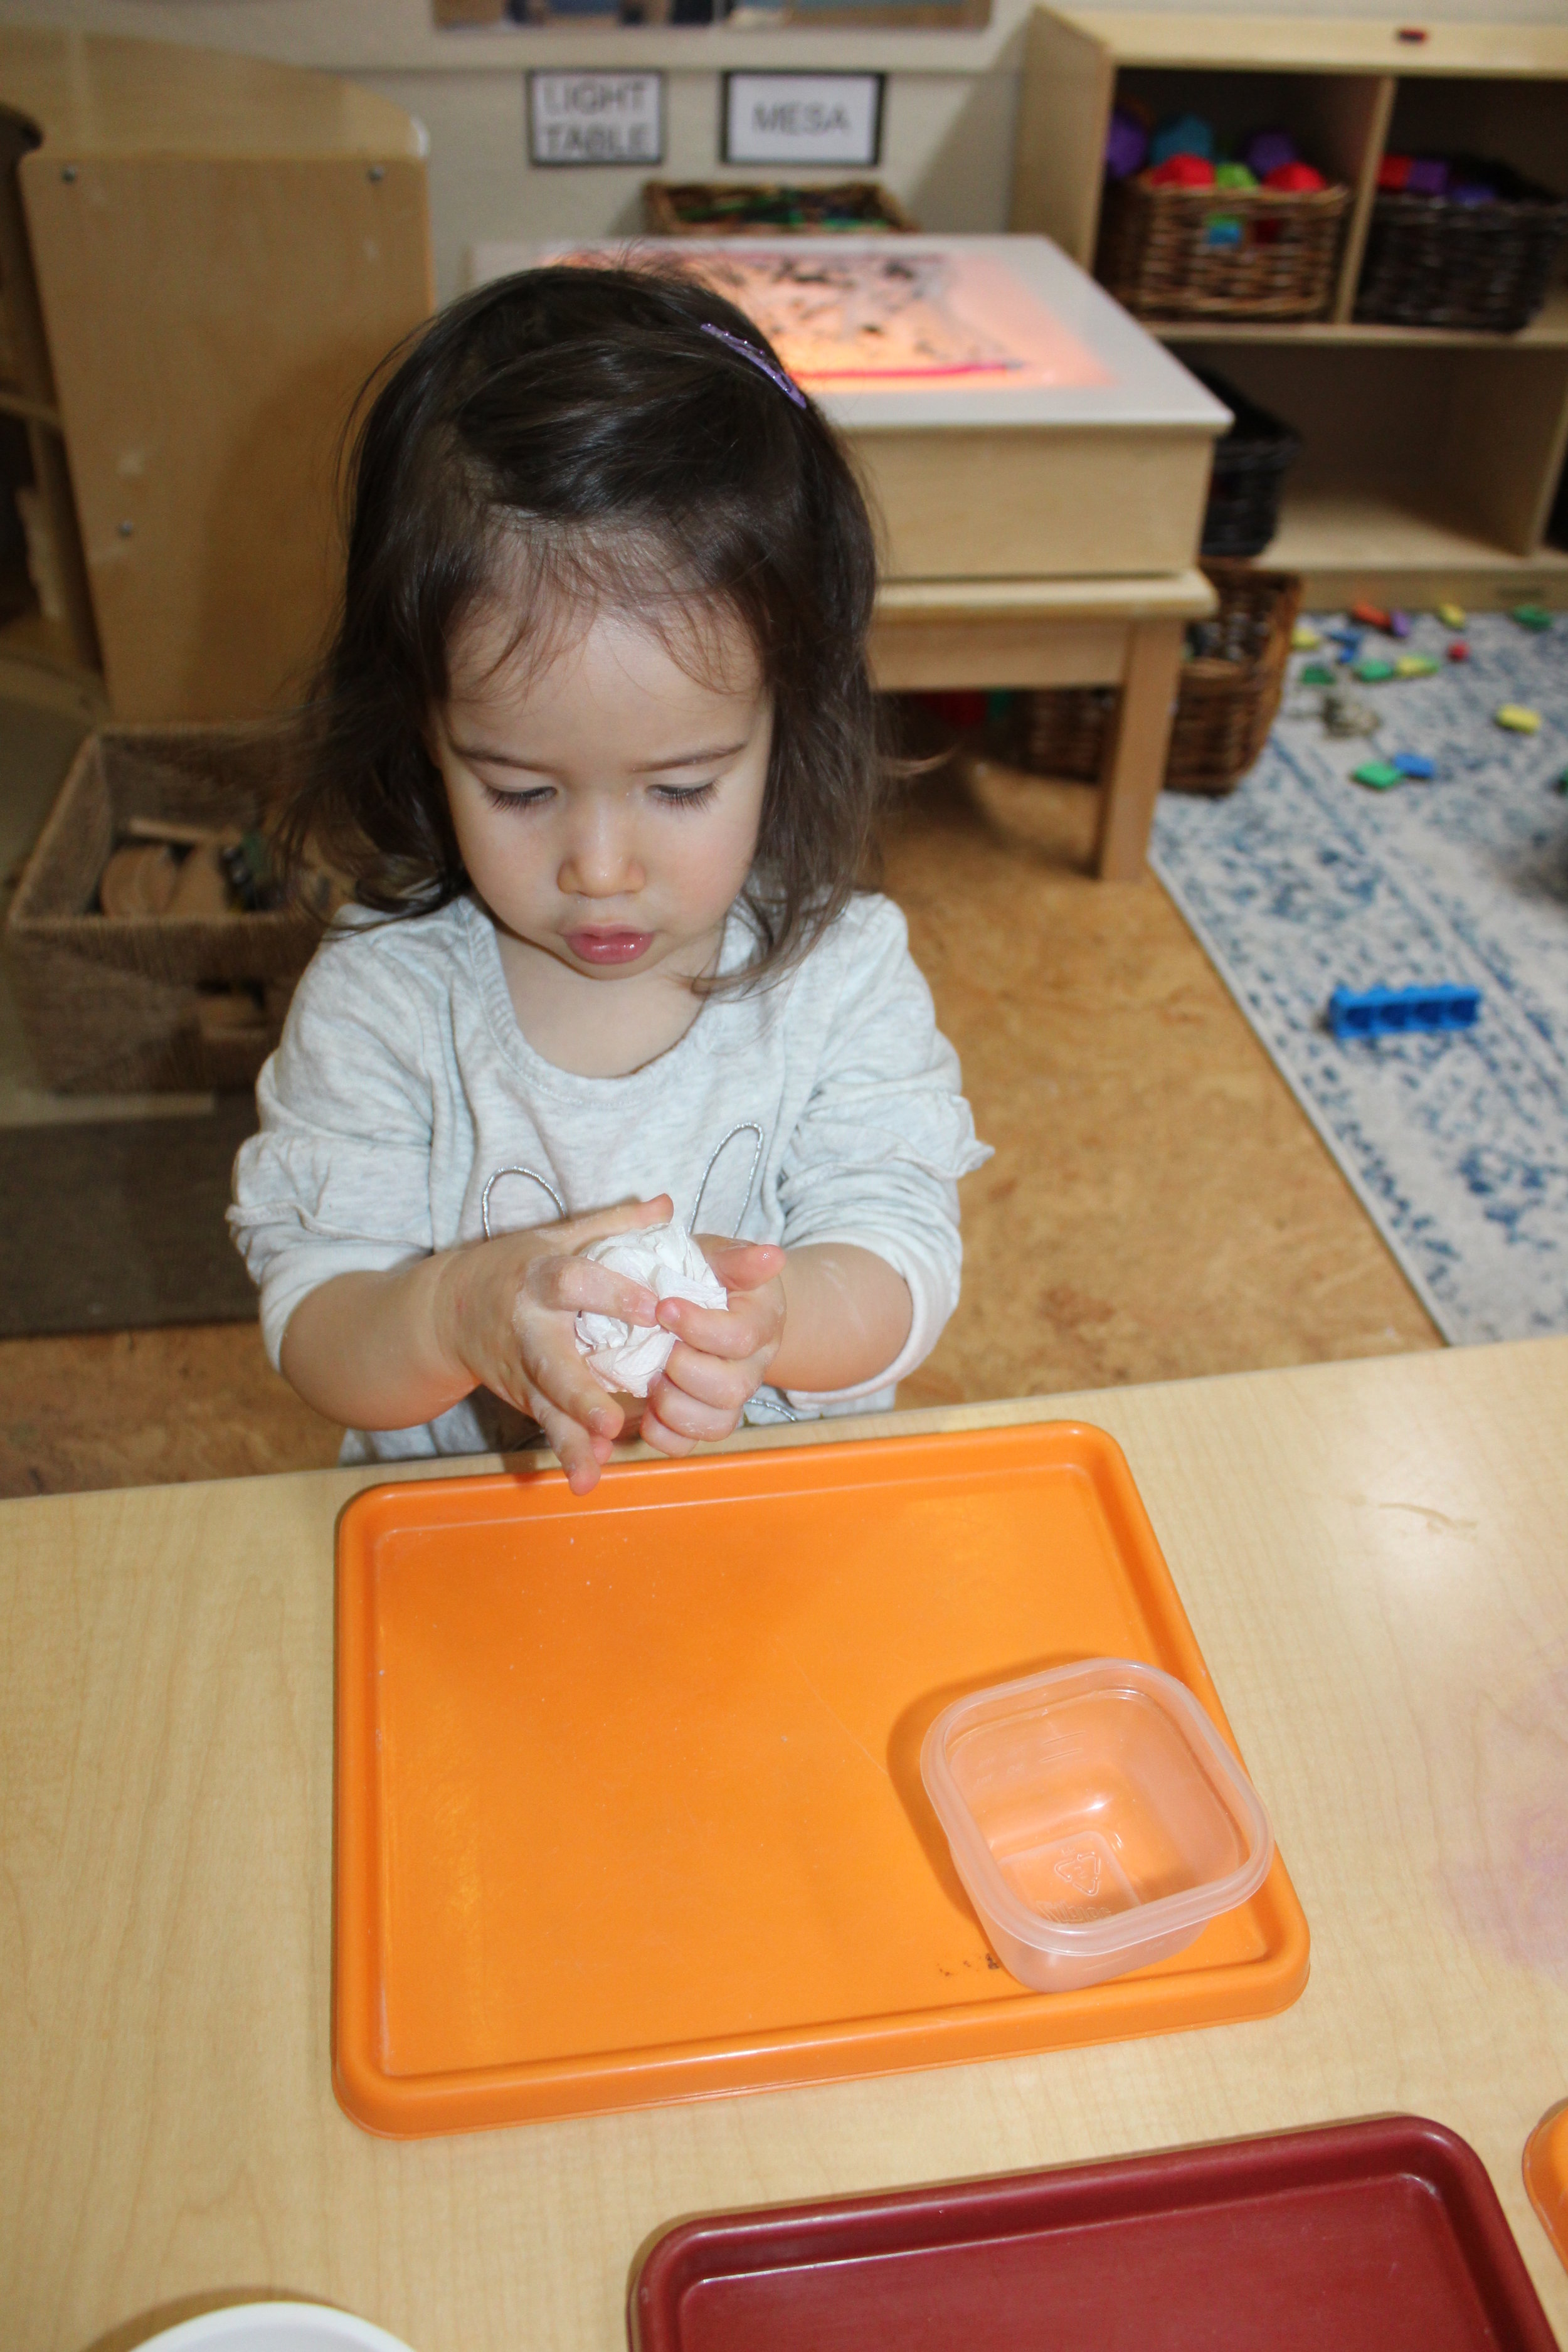 Crumple Paper Project is a three-step project. The children crumple the paper first, use watercolors of their choice, and wait until it gets dry to open the paper. All the children will have the opportunity to do this project. Their artwork will be displayed on the classroom wall.